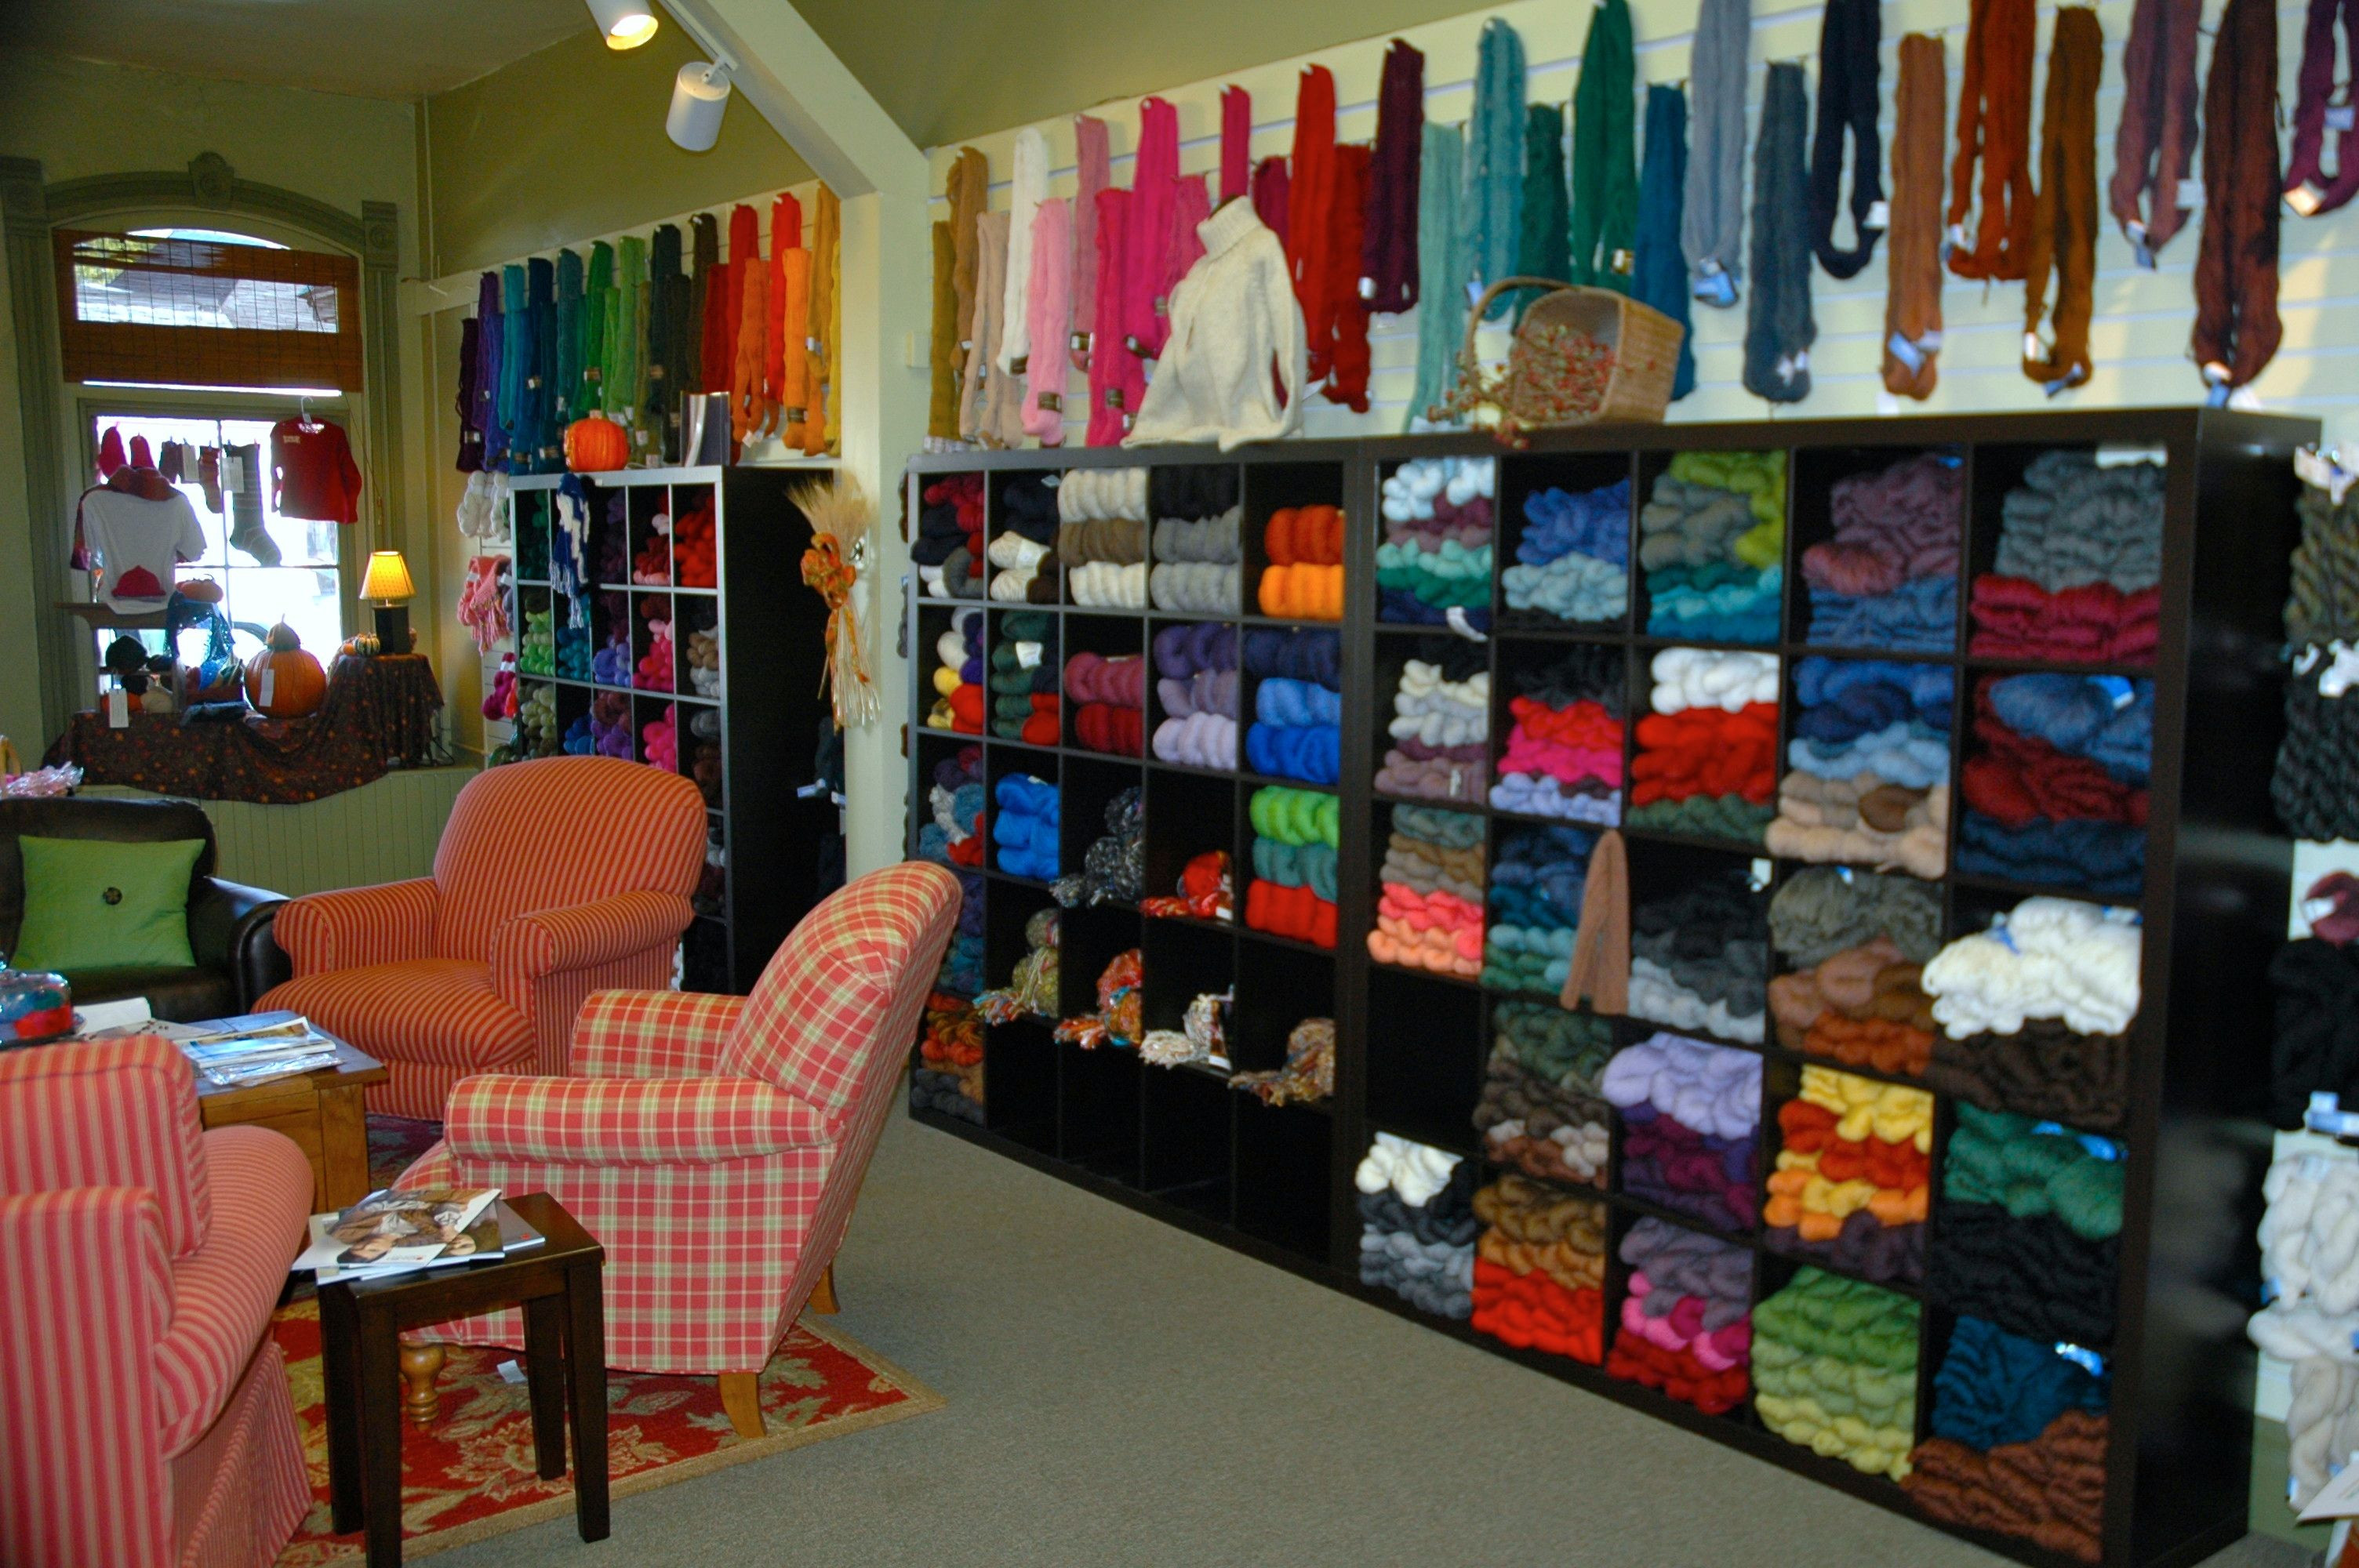 Knitting Shop Inspirational I Want to Open A Cozy Yarn Shop One Day Of Awesome 50 Ideas Knitting Shop